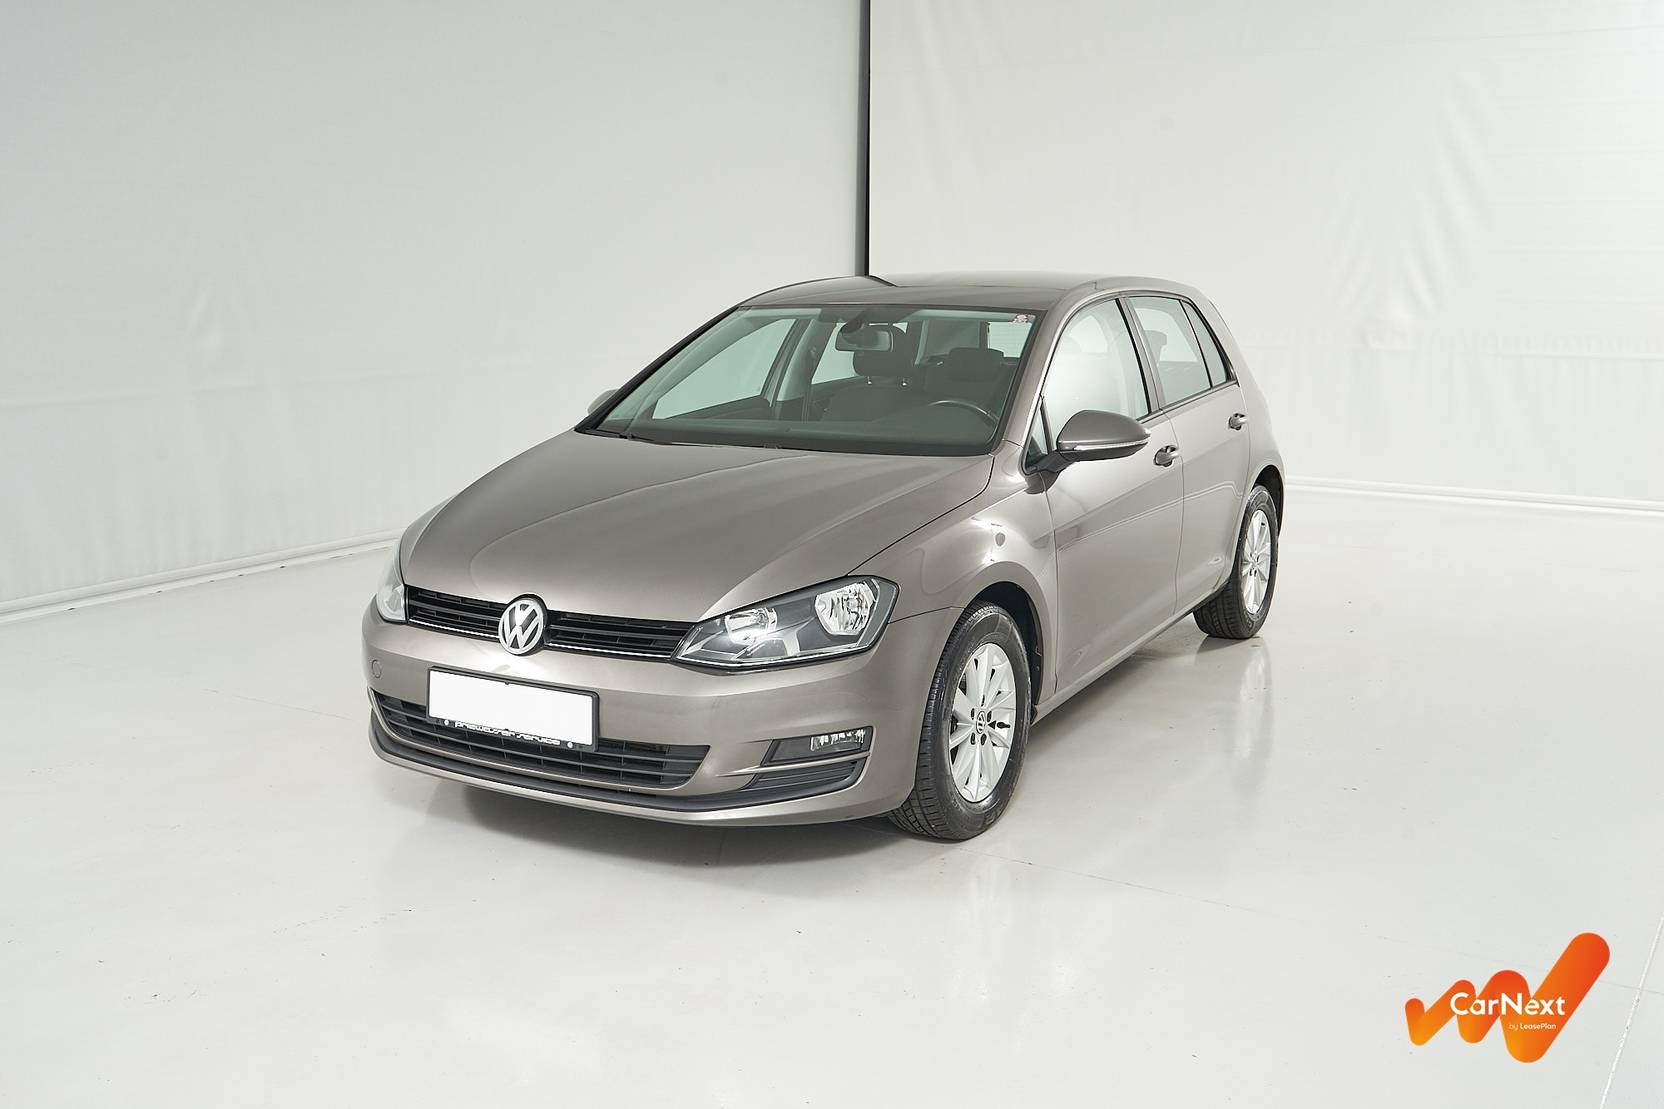 Volkswagen Golf Rabbit 1.6 TDI (123951) detail2